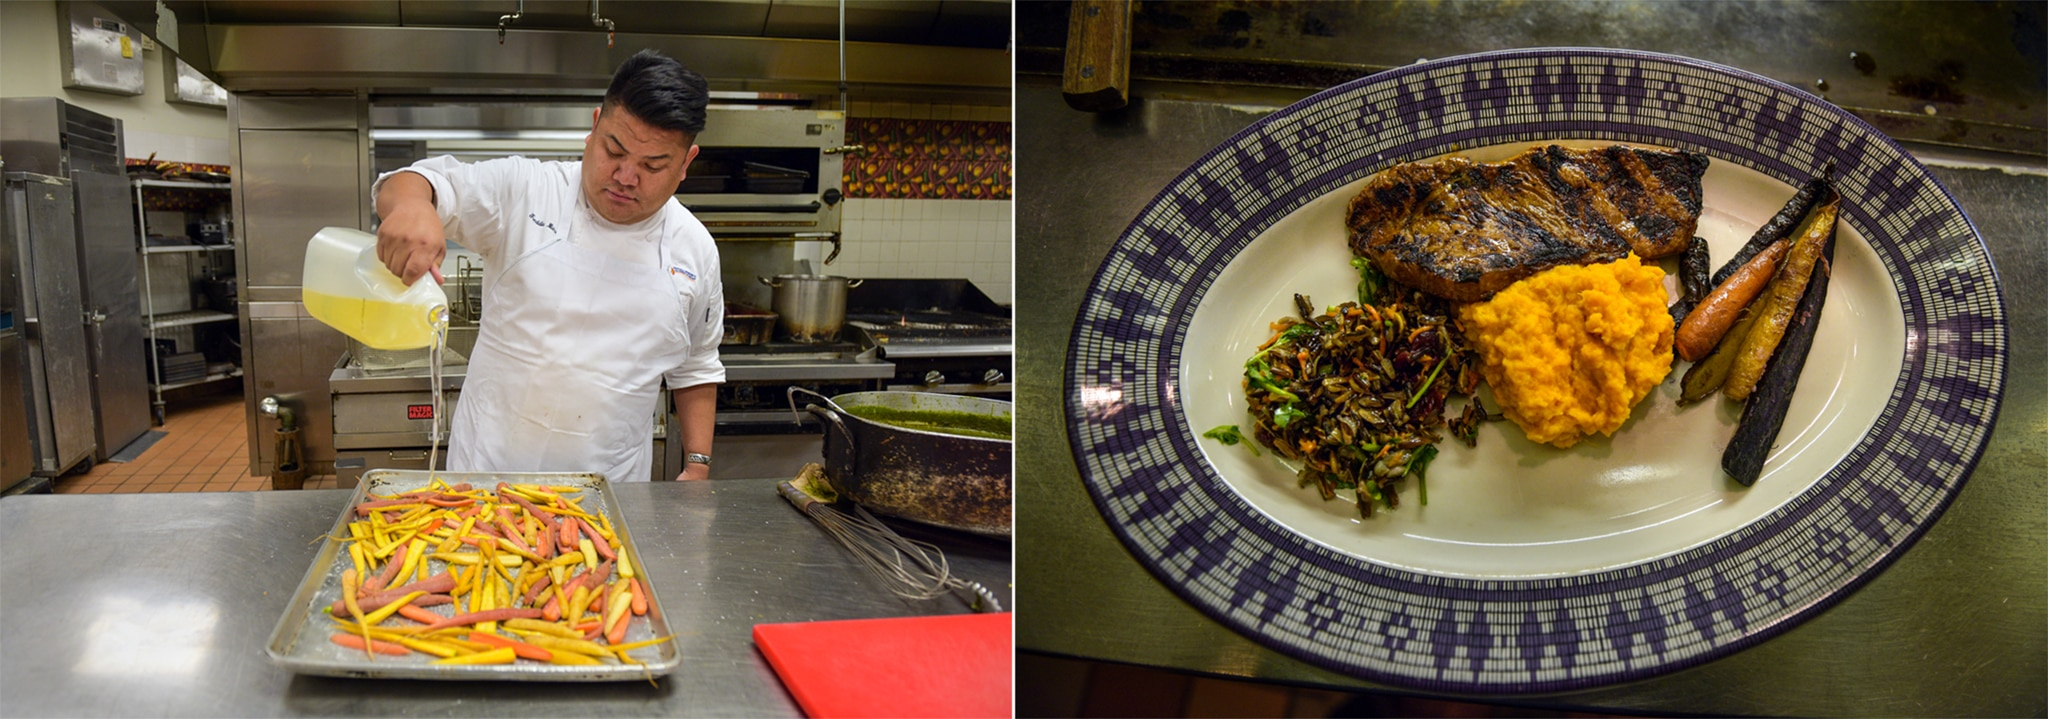 On left, Freddie Bitsoie pouring oil over food to prep it; on right, a plate of prepared food (© Carol Guzy)